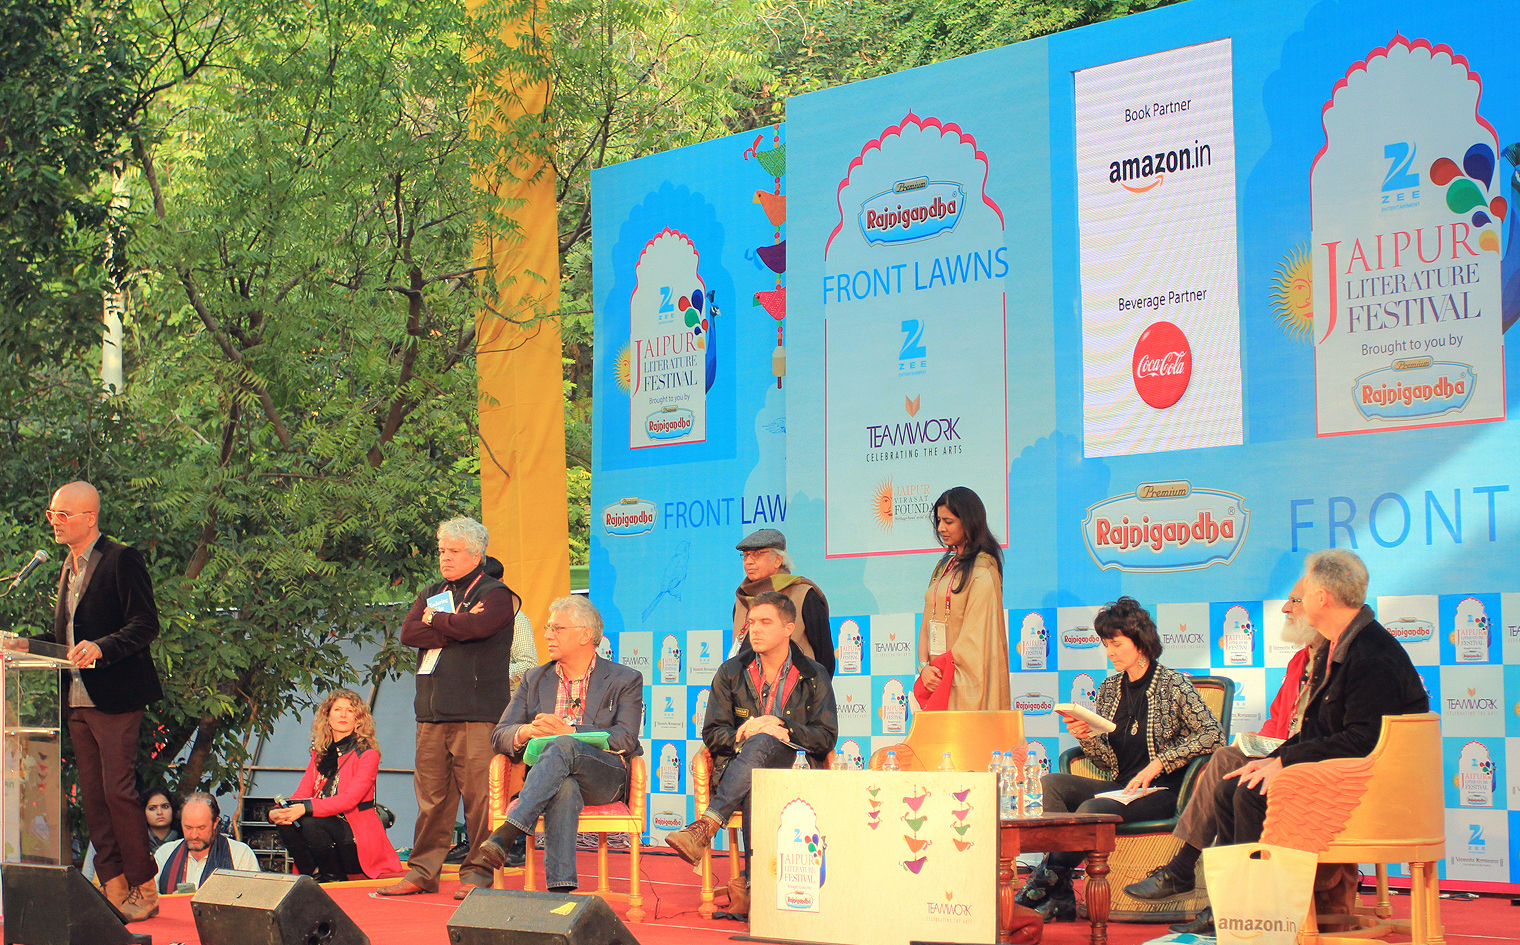 The Jaipur Literary Festival: A uniquely Indian Experience